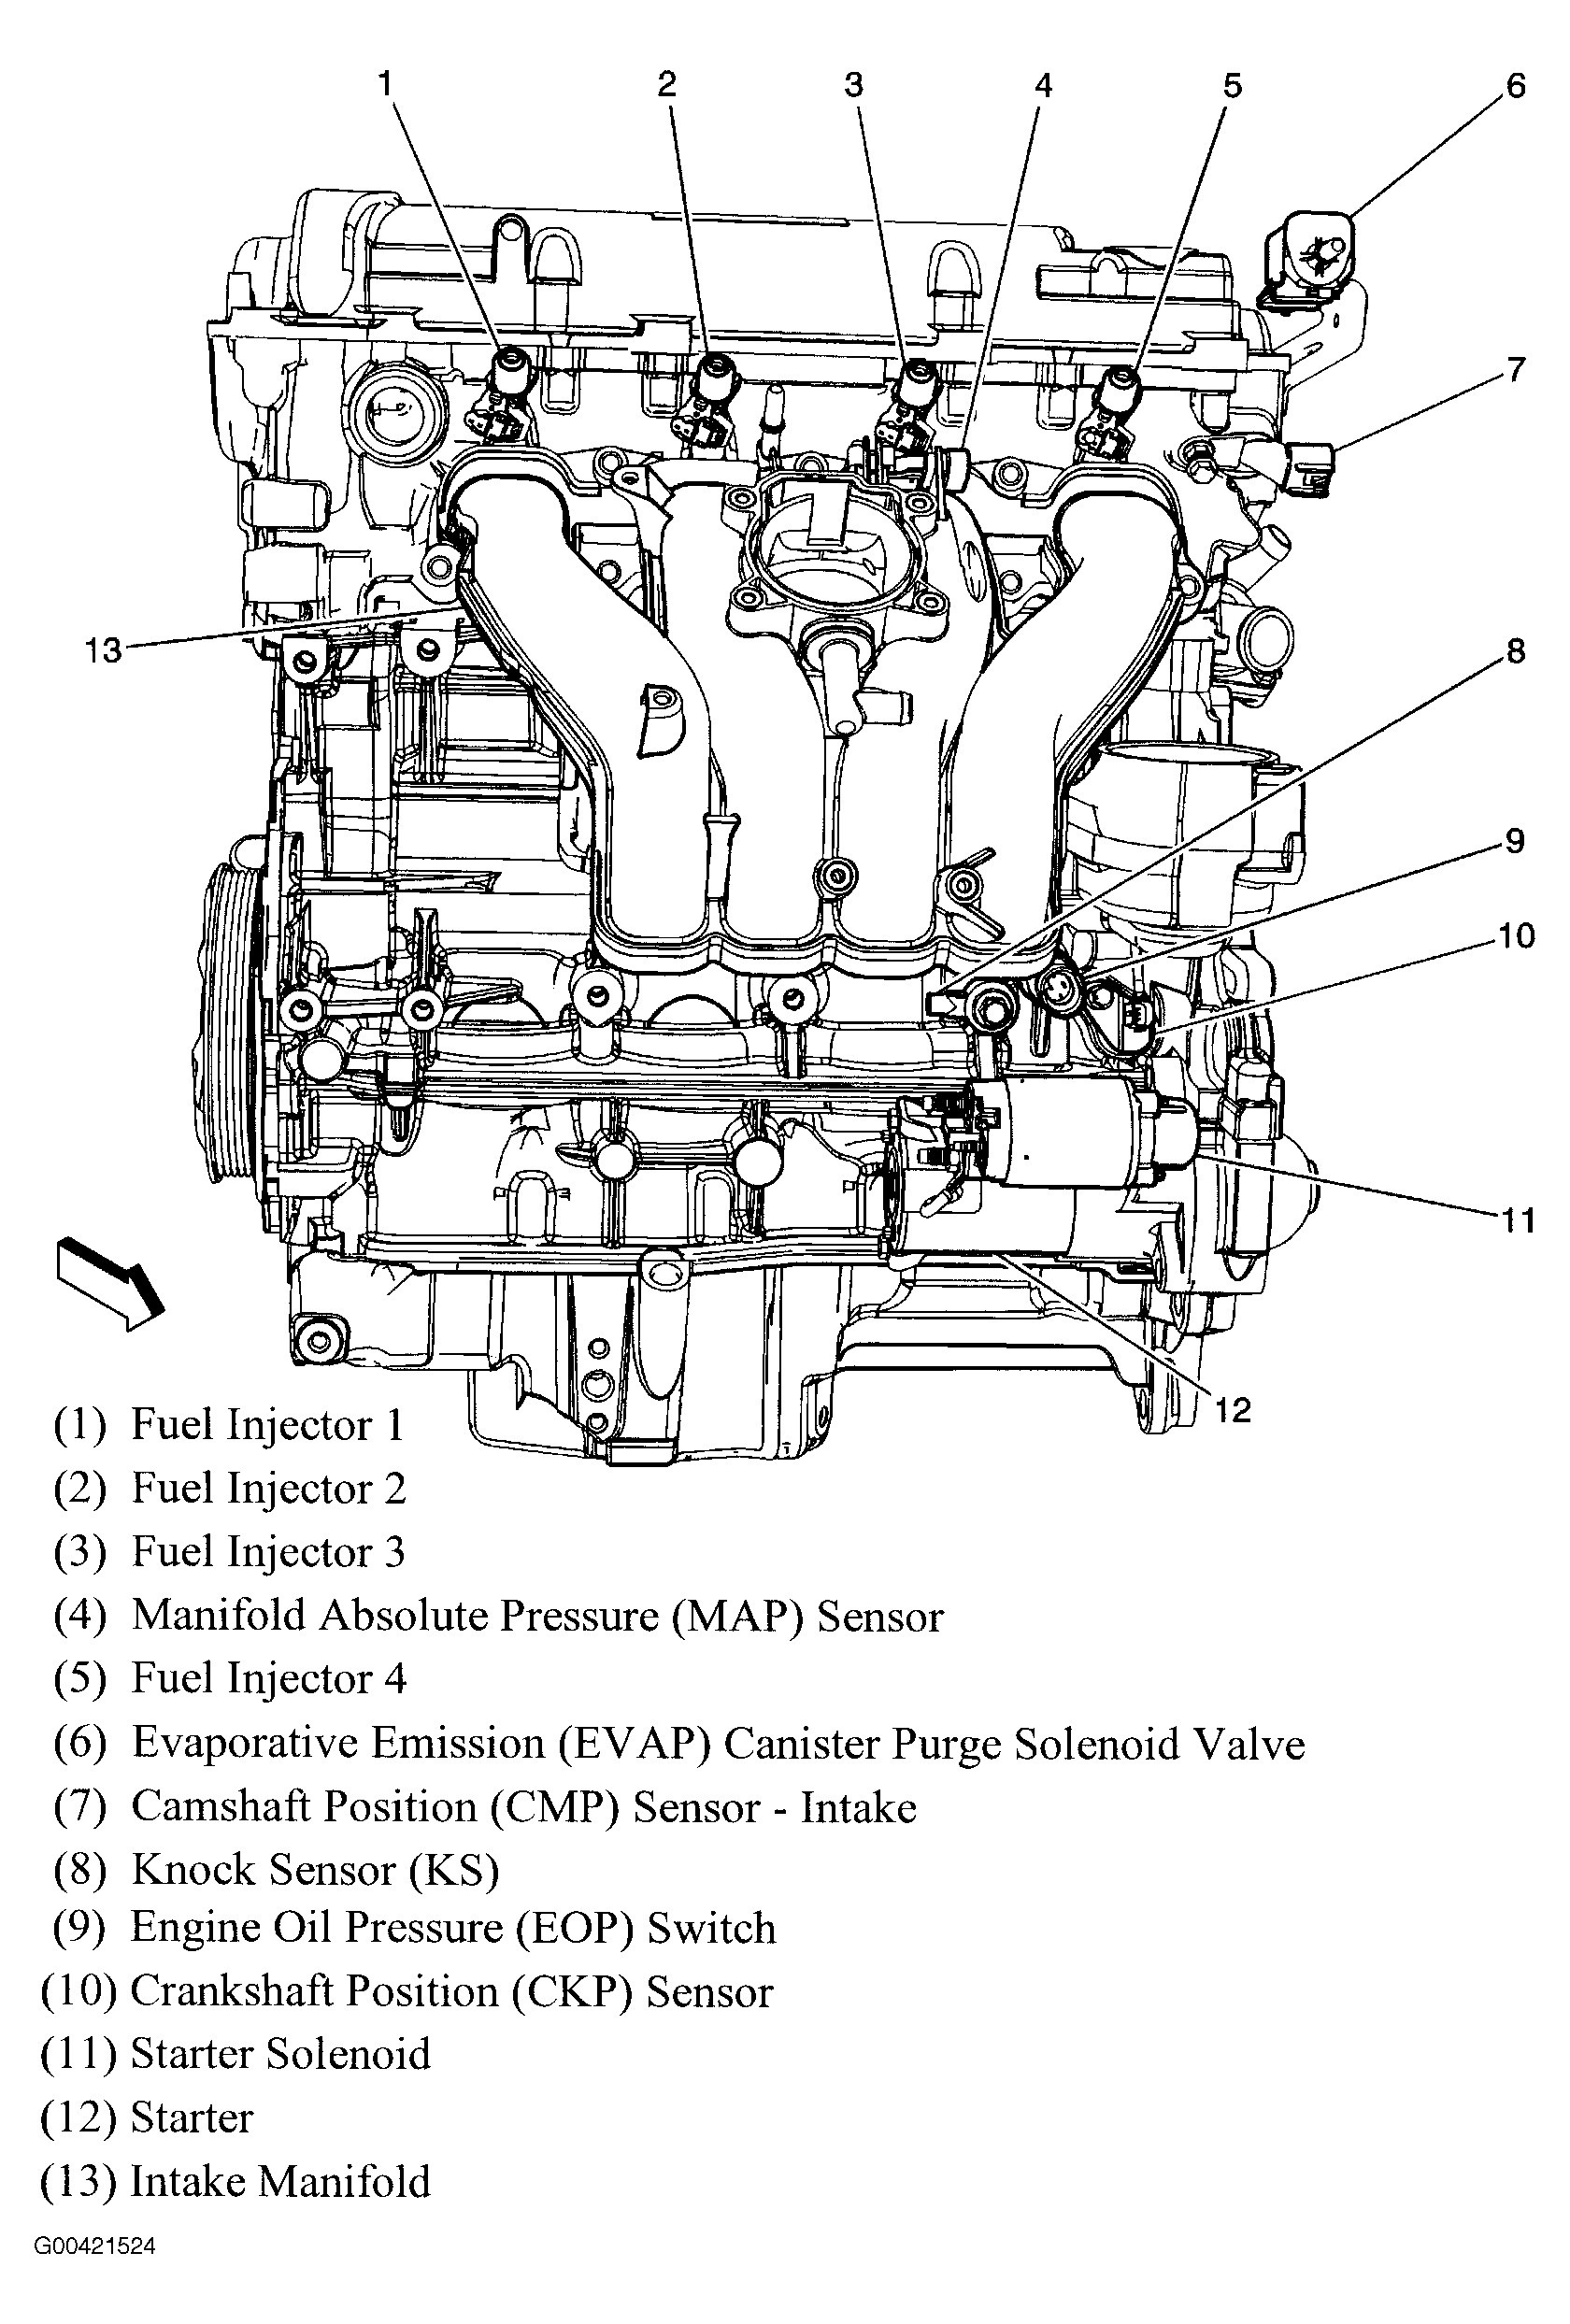 hight resolution of custom 2000 buick century engine diagram wiring diagram datasource 02 buick 3 1 engine diagram wiring